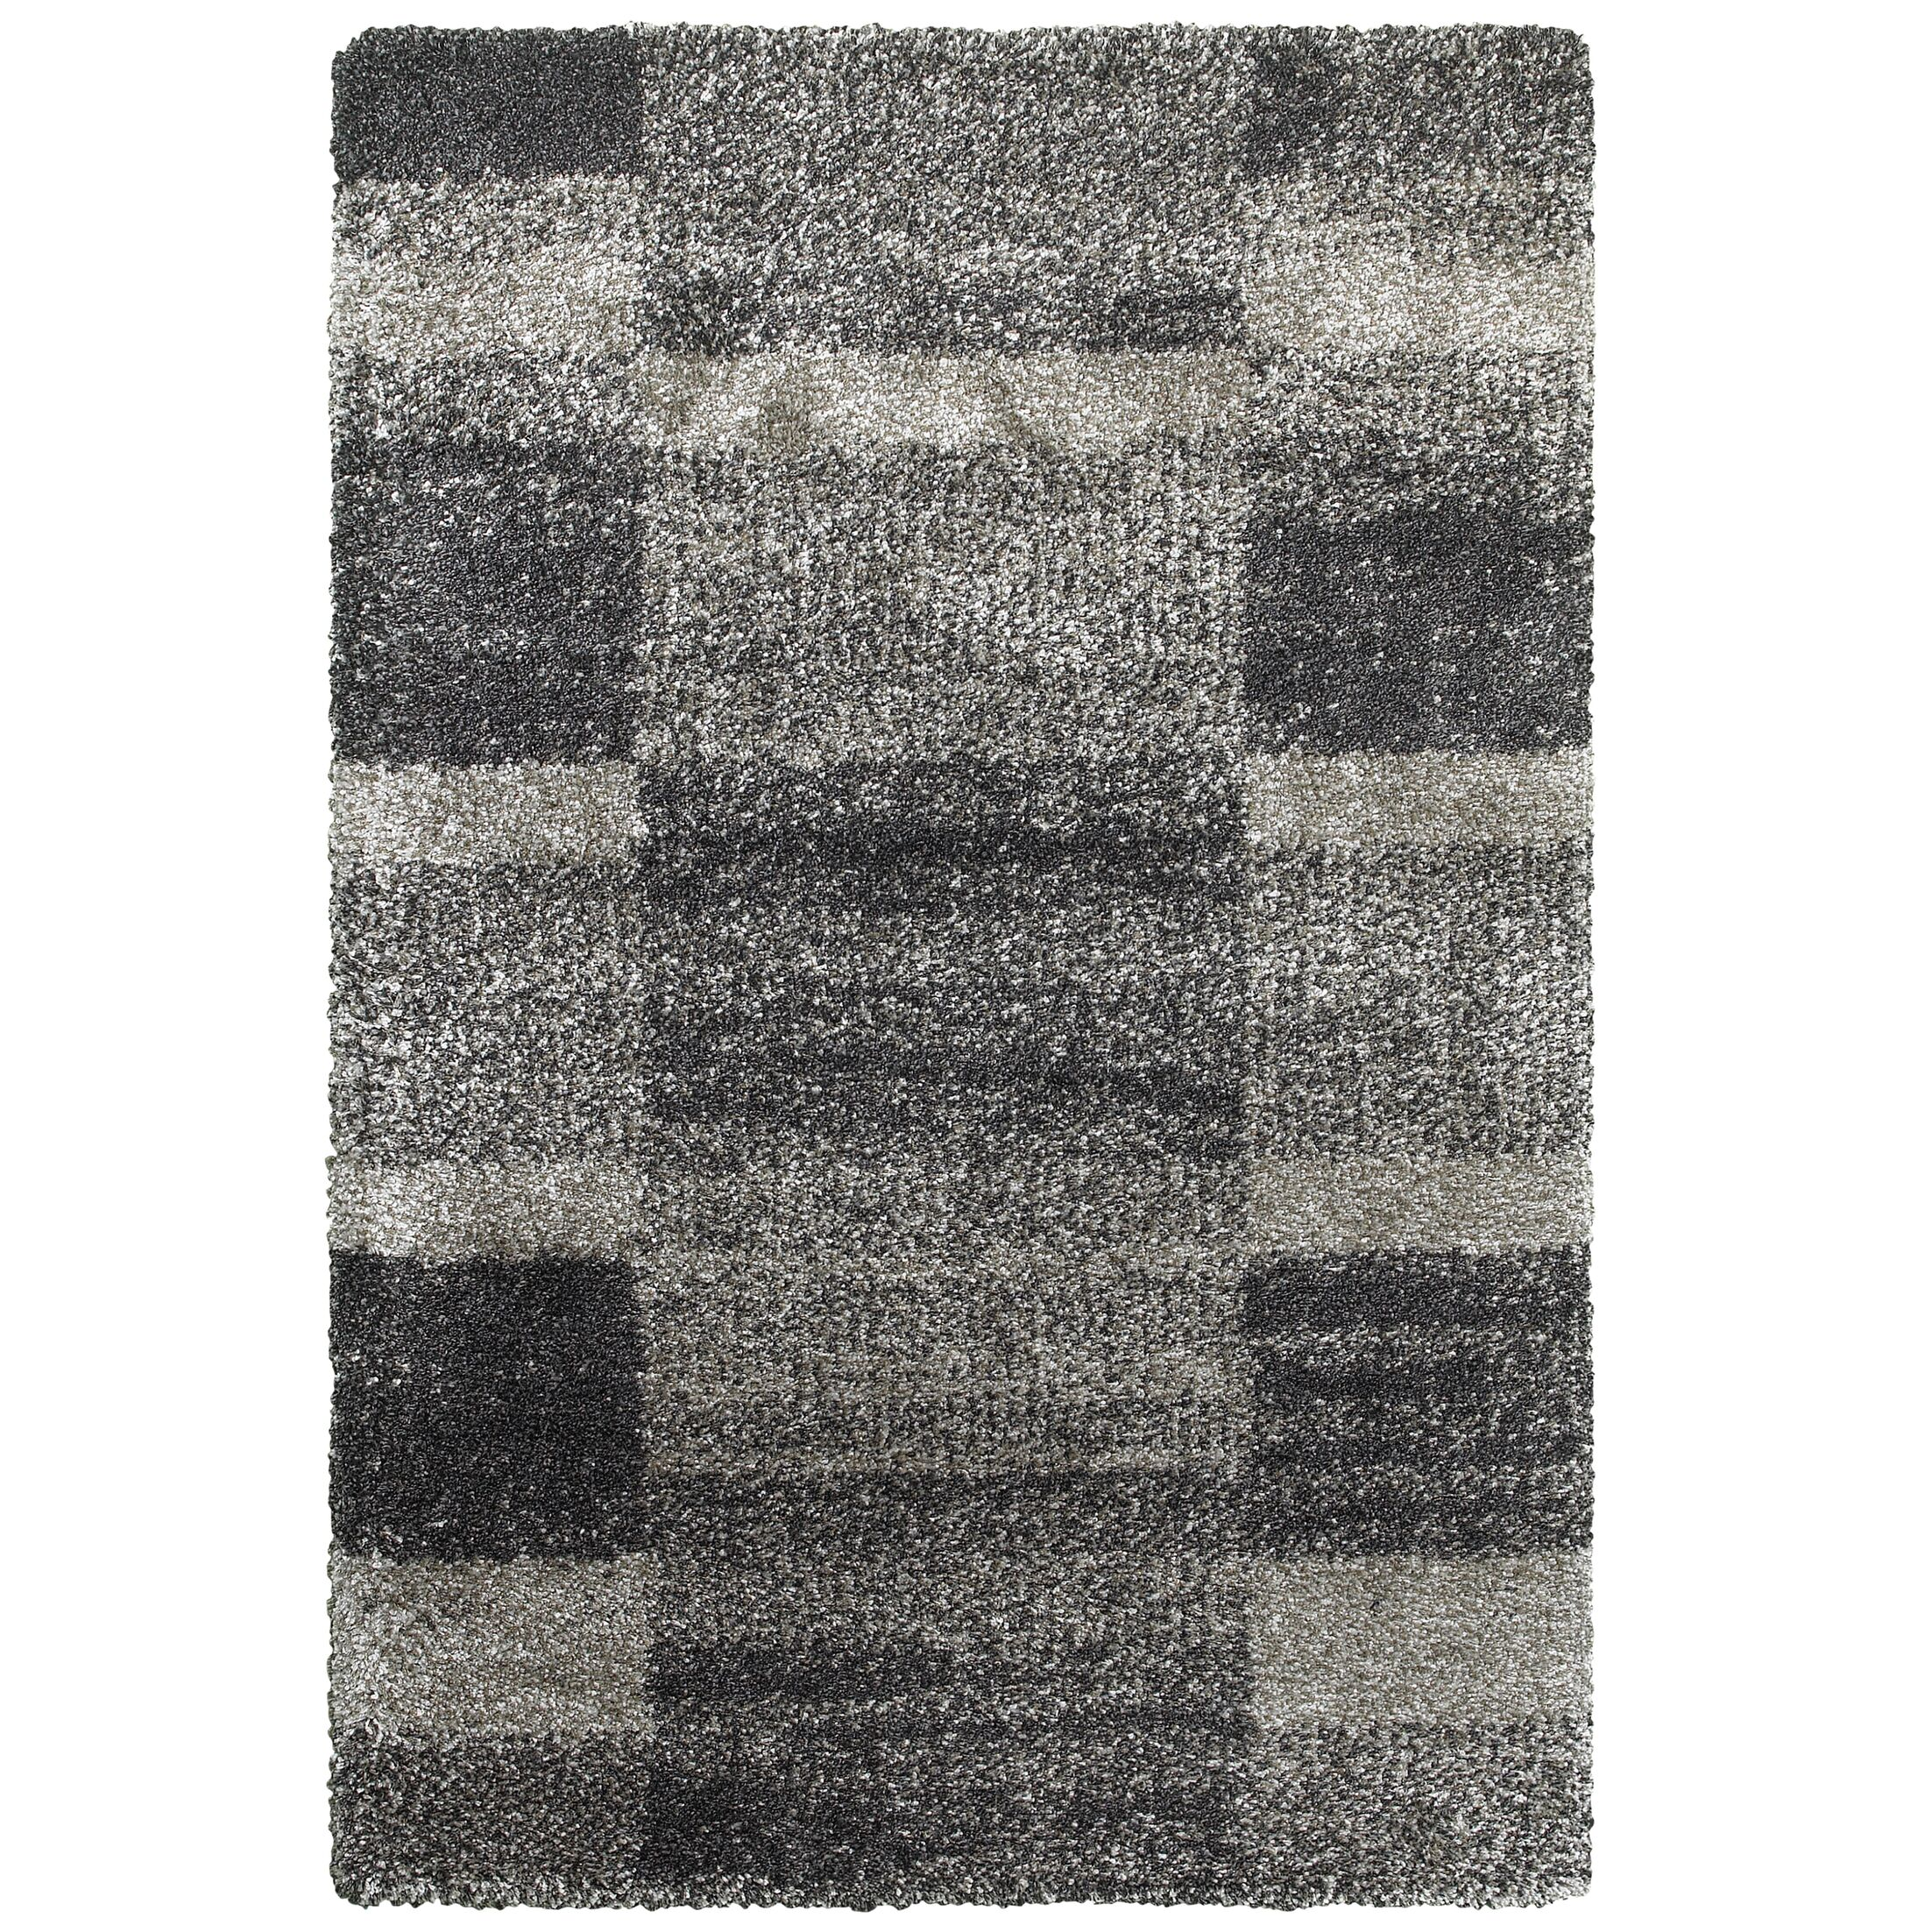 Leonard Gray/Charcoal Area Rug Size: Rectangle 7'10